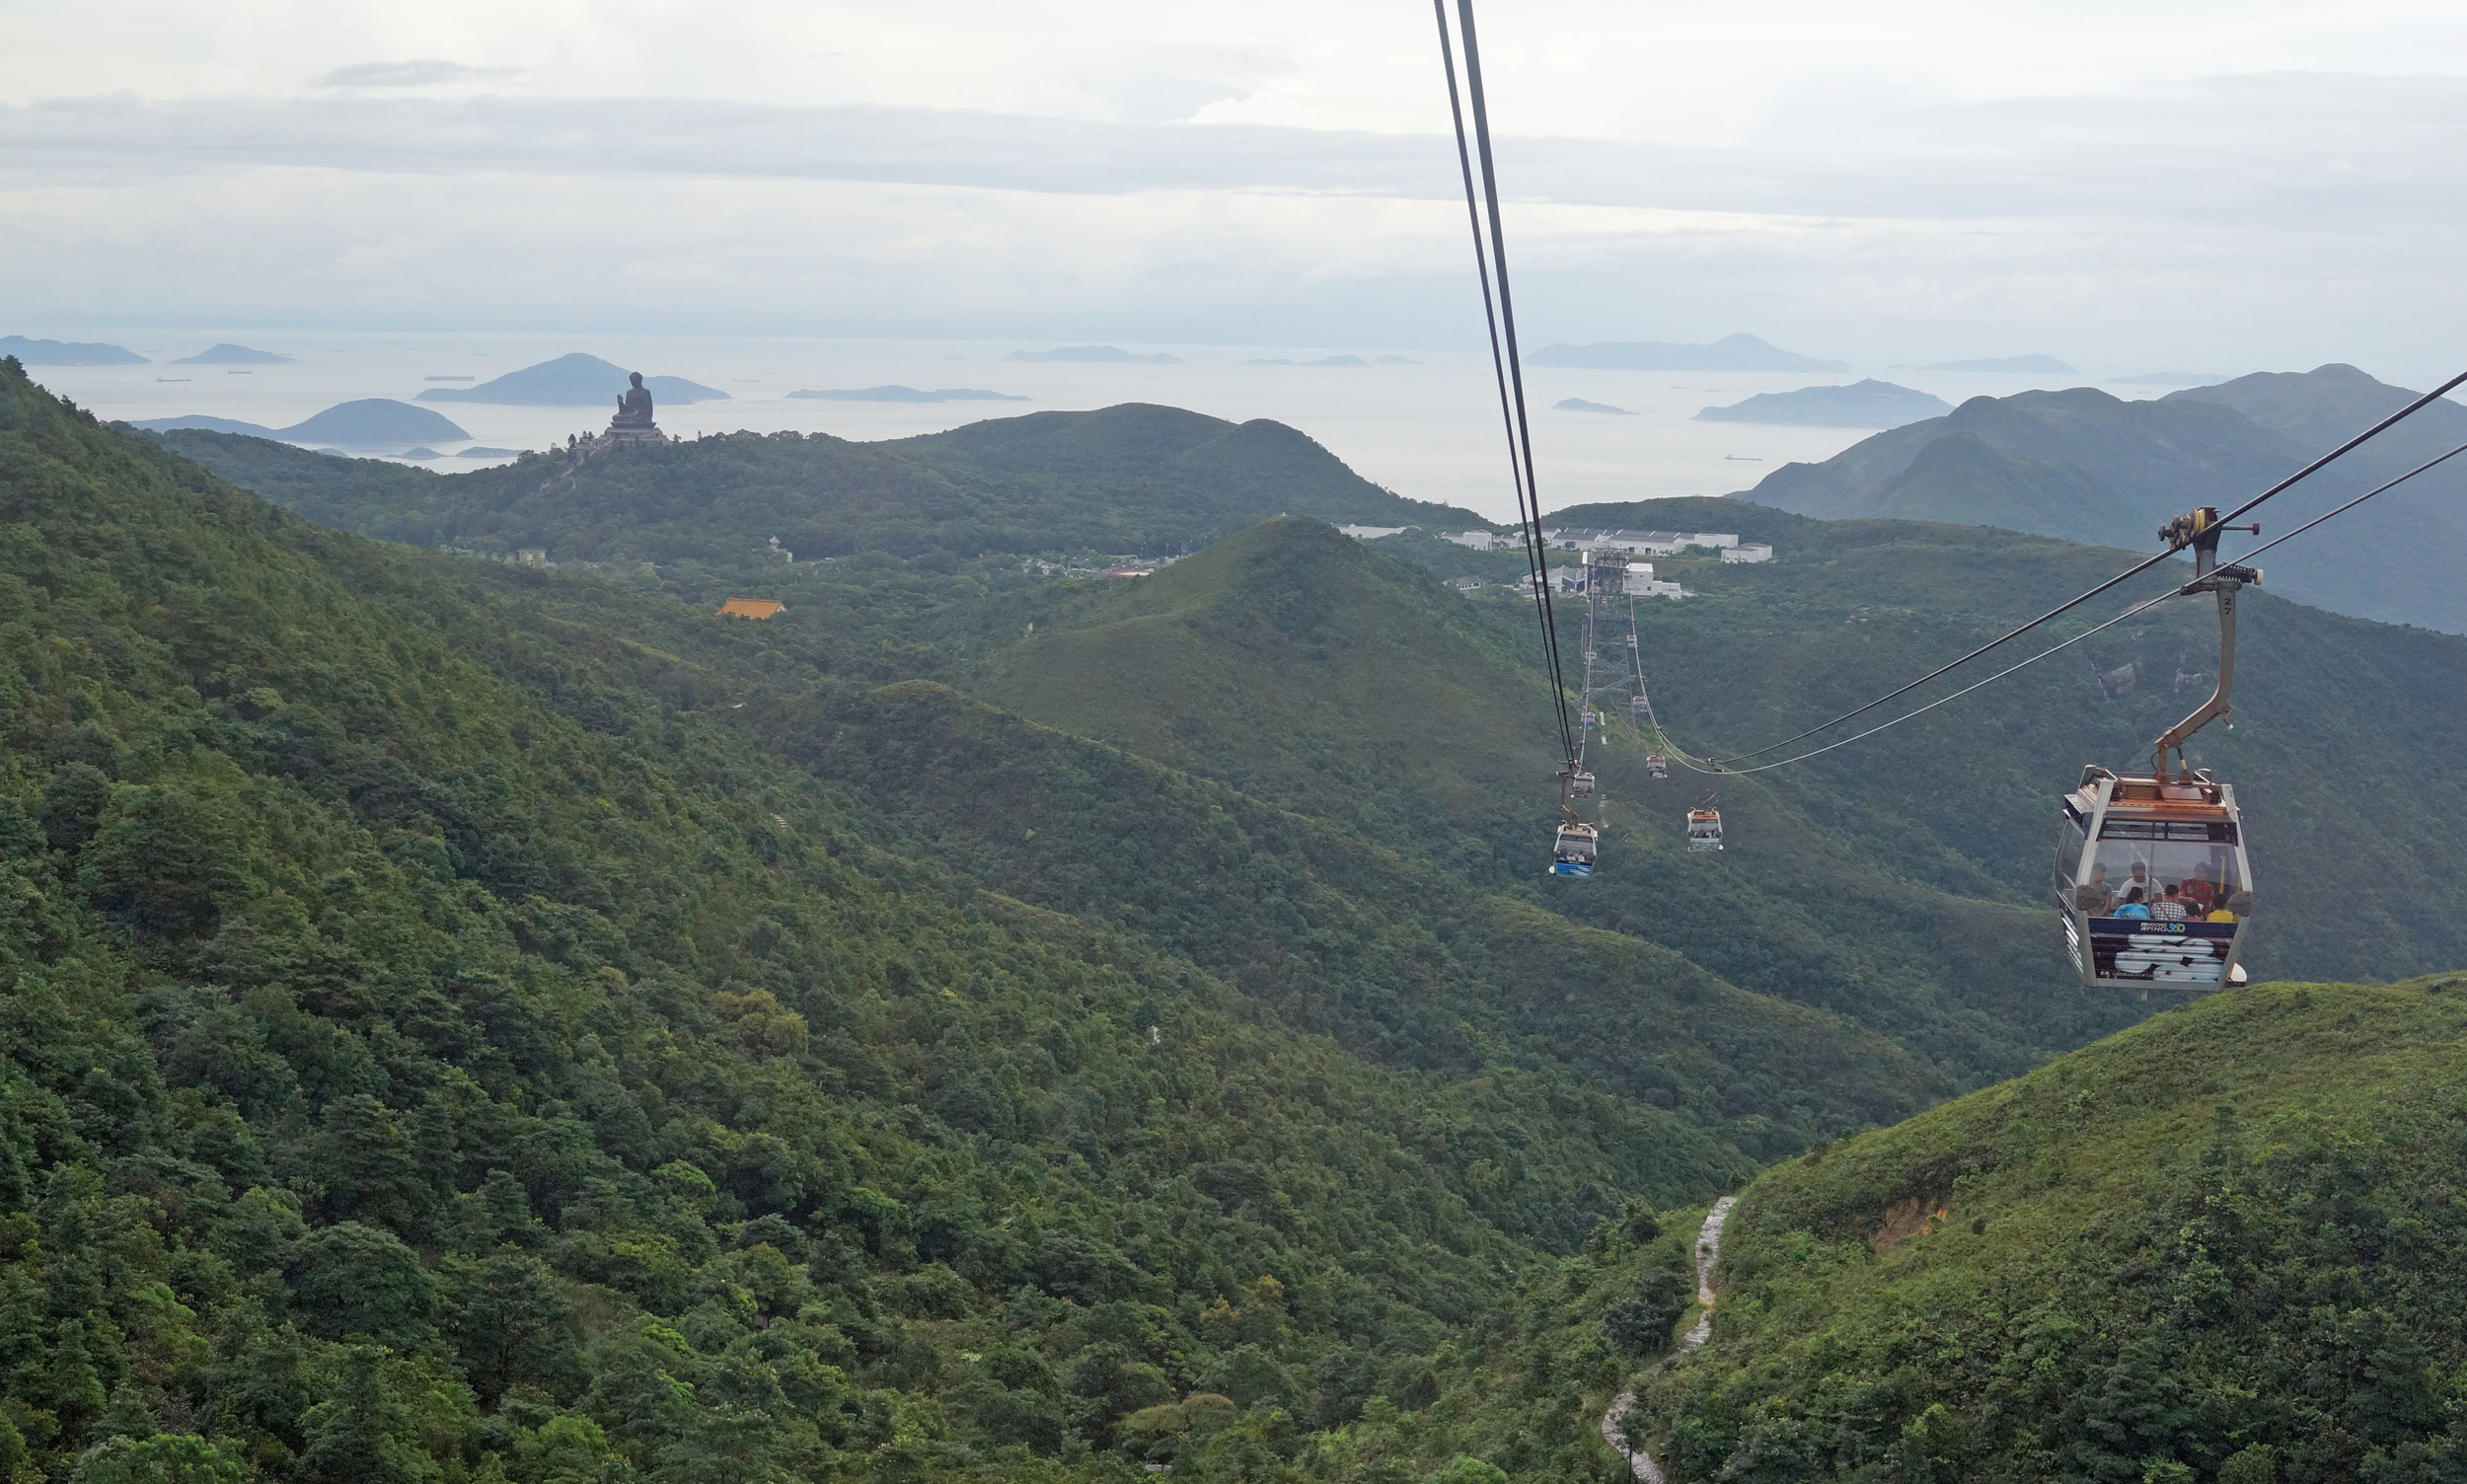 OK, so you need a clear day but it is still quite a sight when the Giant Buddha on Lantau Island, Hong Kong comes into view from the NP 360 Cable Car.